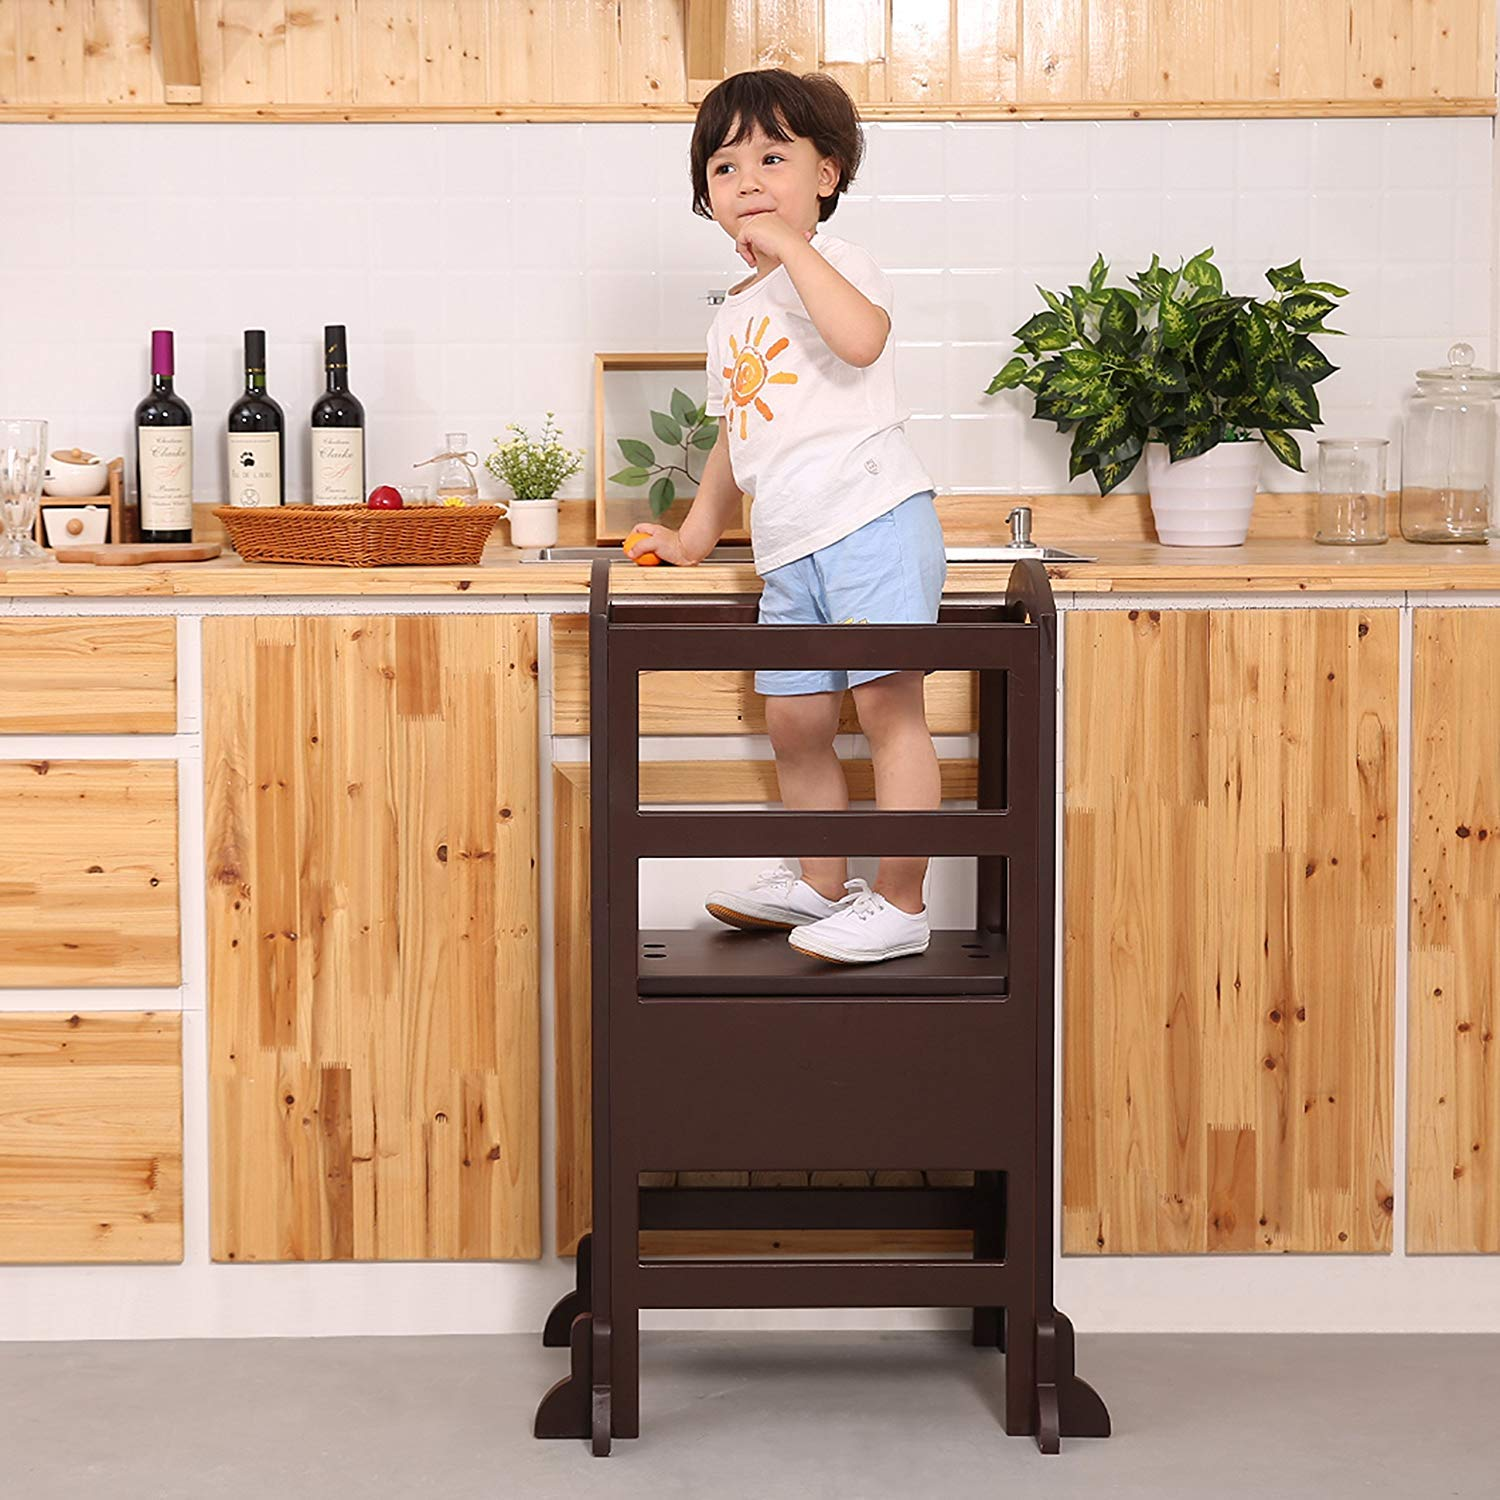 UNICOO- Height Adjustable Kids Learning Stool, Kids Kitchen Step Stool, Toddler Stool with Safety Rail-Solid Hardwood Construction. Perfect for Toddlers (Espresso - 02) by UNICOO (Image #1)